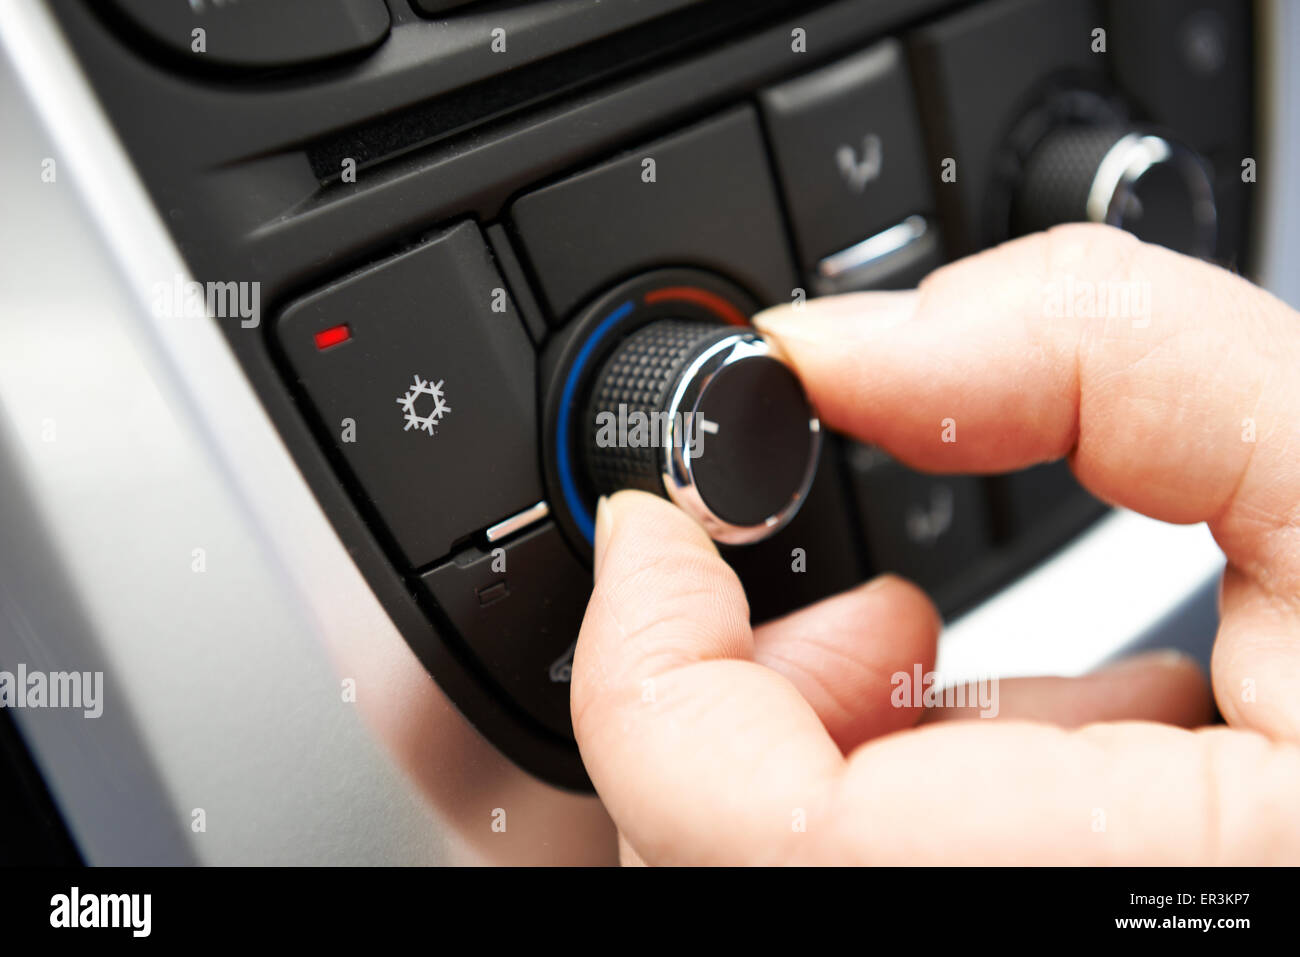 Close Up Of Hand Adjusting Car Air Conditioning Control On Dashboard - Stock Image